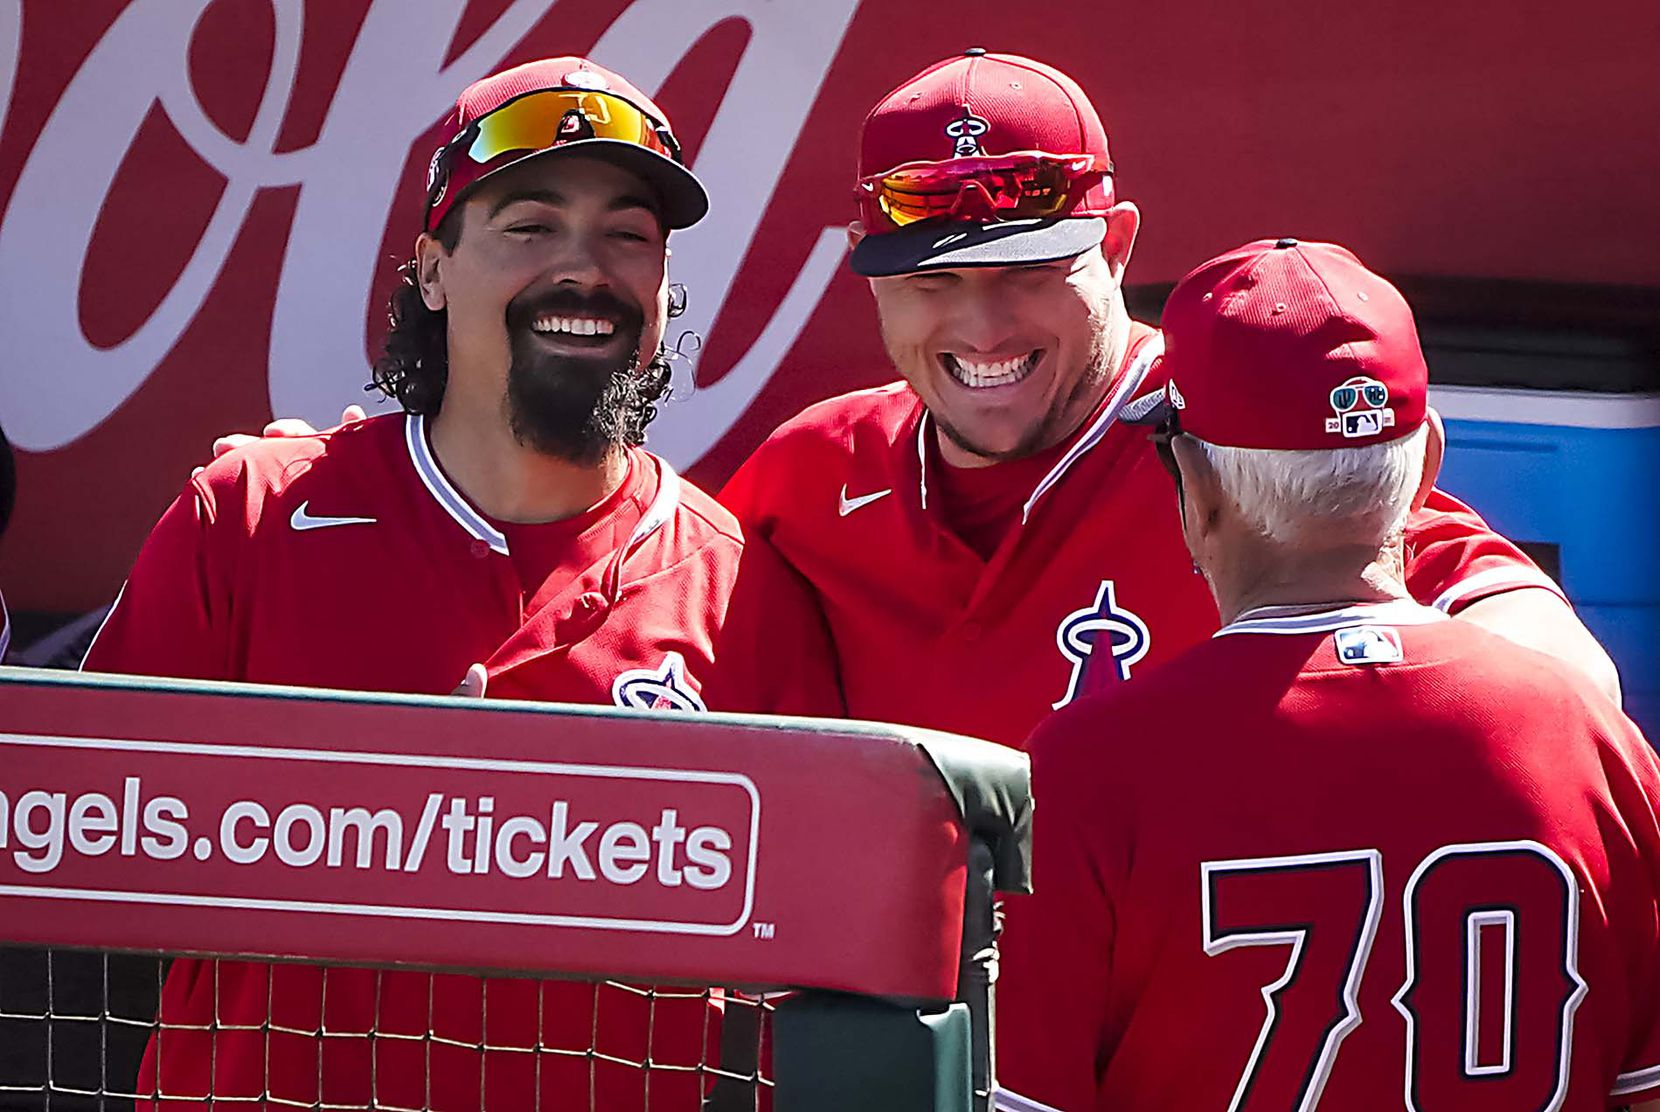 Los Angeles Angels third baseman Anthony Rendon (left) and center fielder Mike Trout laugh with manager Joe Maddon (70) in the dugout before a spring training game against the Texas Rangers at Tempe Diablo Stadium on Wednesday, March 3, 2021, in Tempe, Ariz. (Smiley N. Pool/The Dallas Morning News)